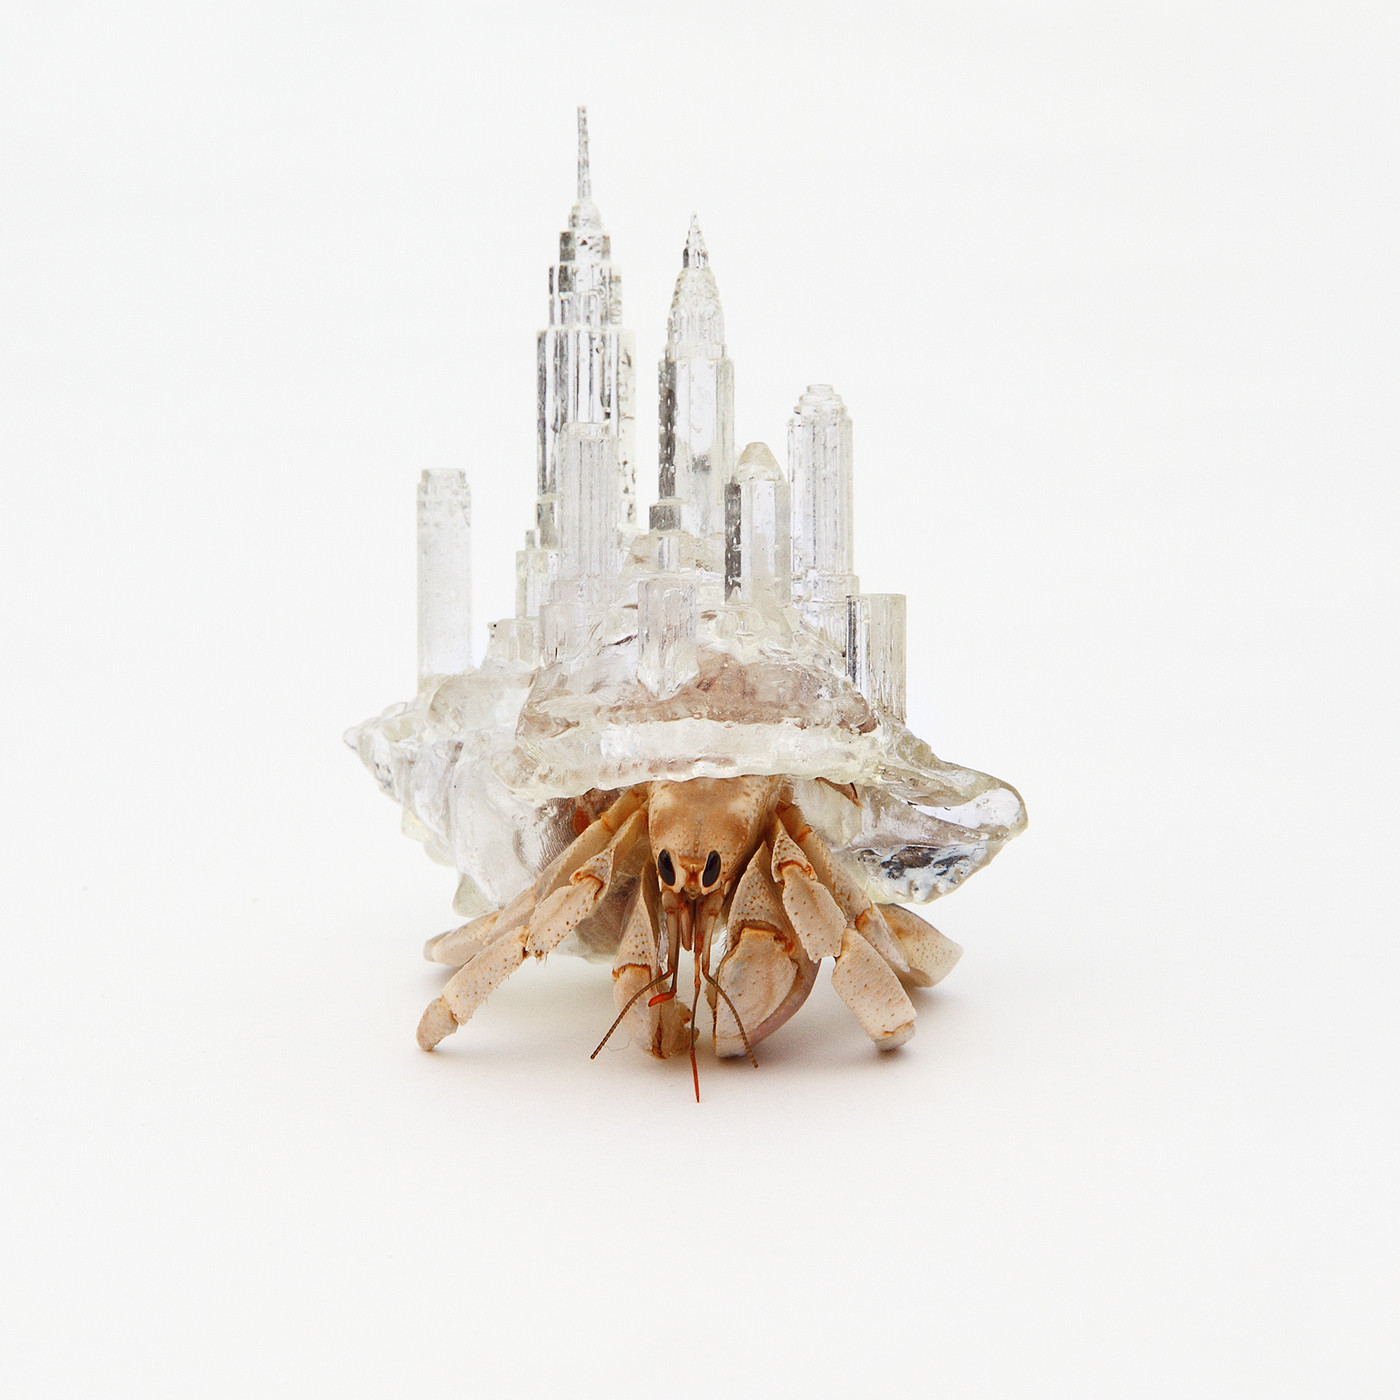 Why Not Hand A Hermit Crab a Shelter?, © Aki Inomata